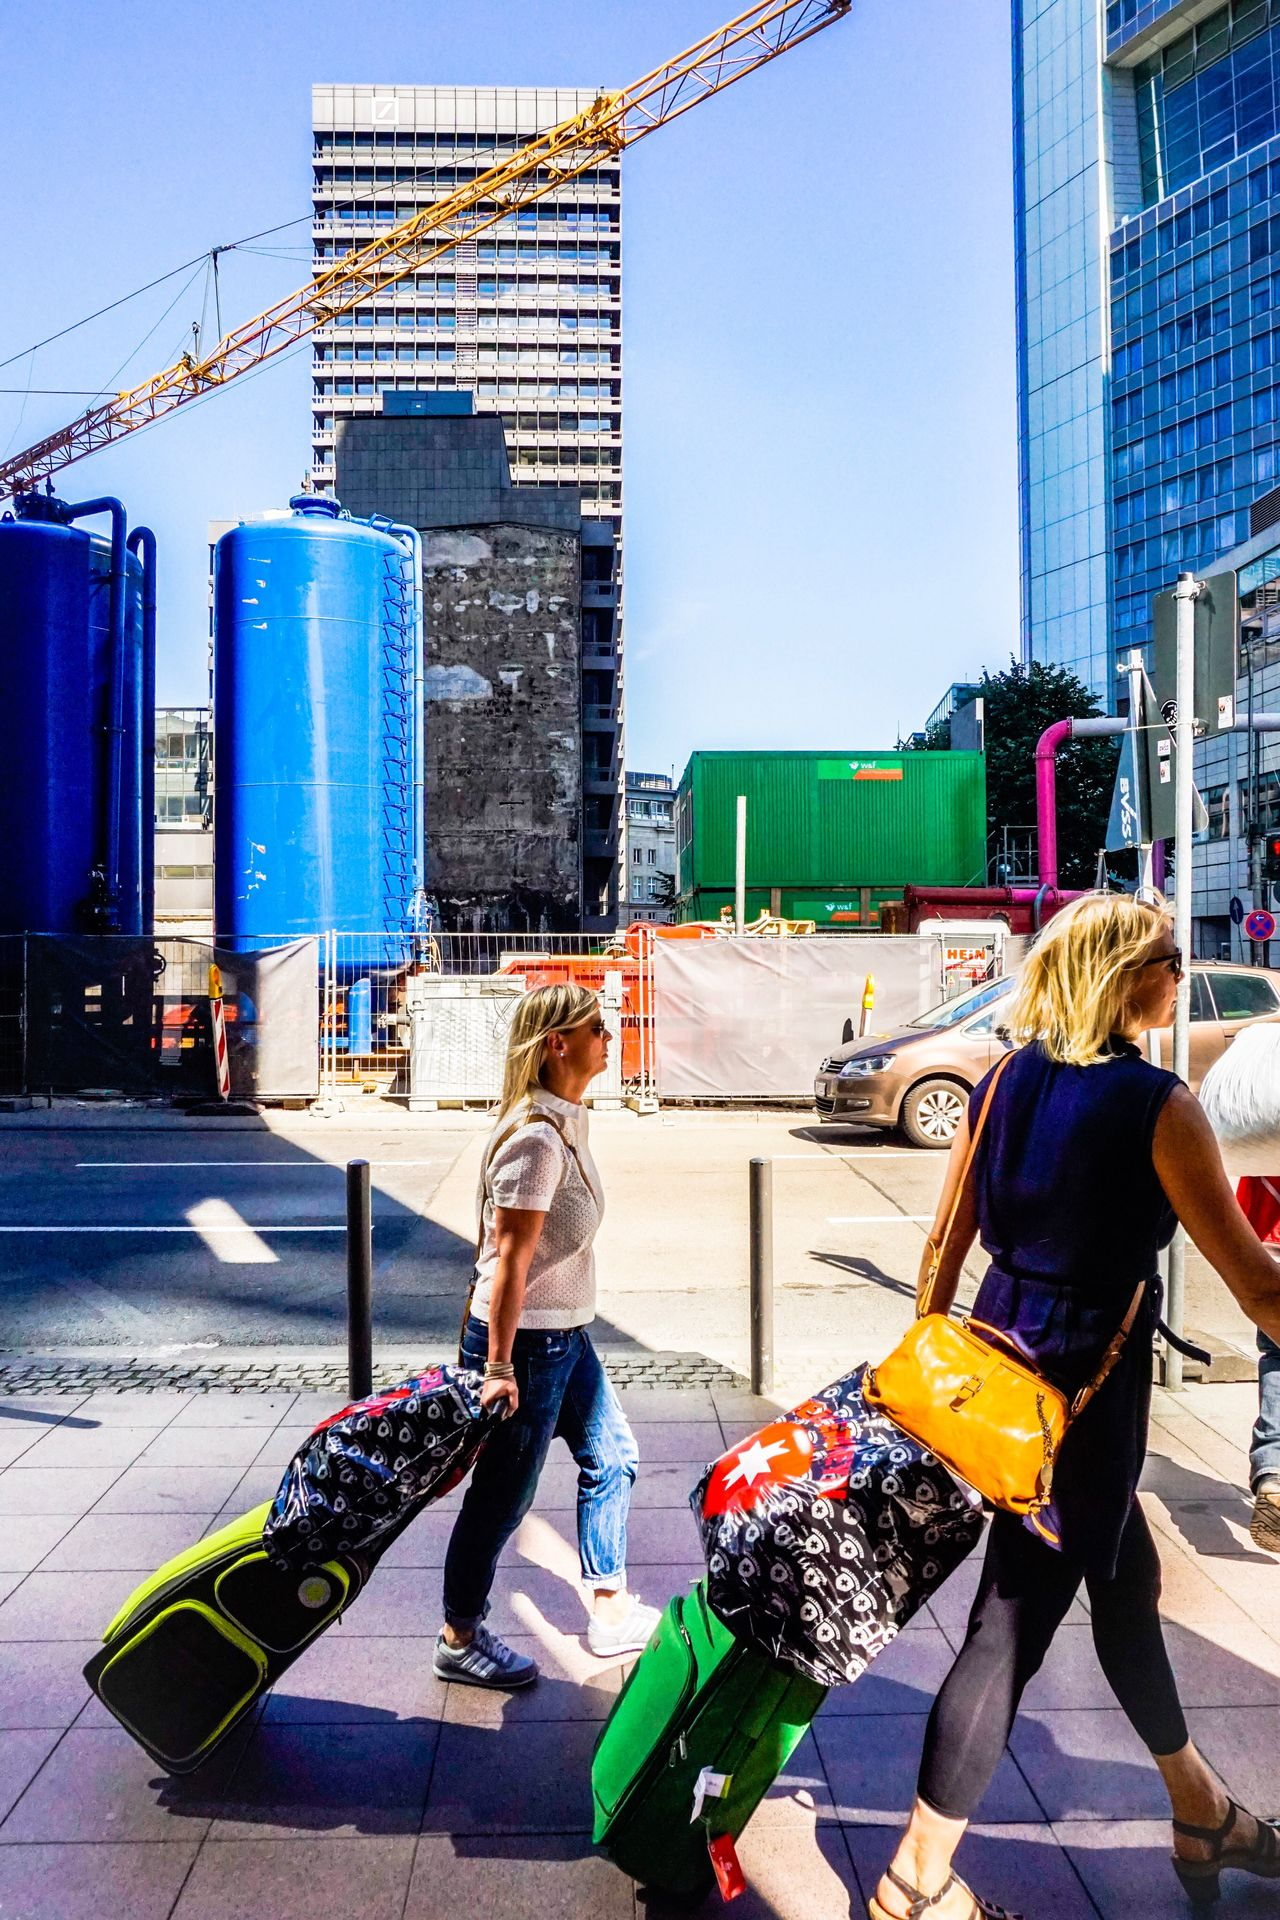 Frankfurt Am Main Streetphotography Street Photography Real People City Built Structure Lifestyles Full Length Building Exterior Architecture City Life Day Car Outdoors Childhood Two People Road Sky People